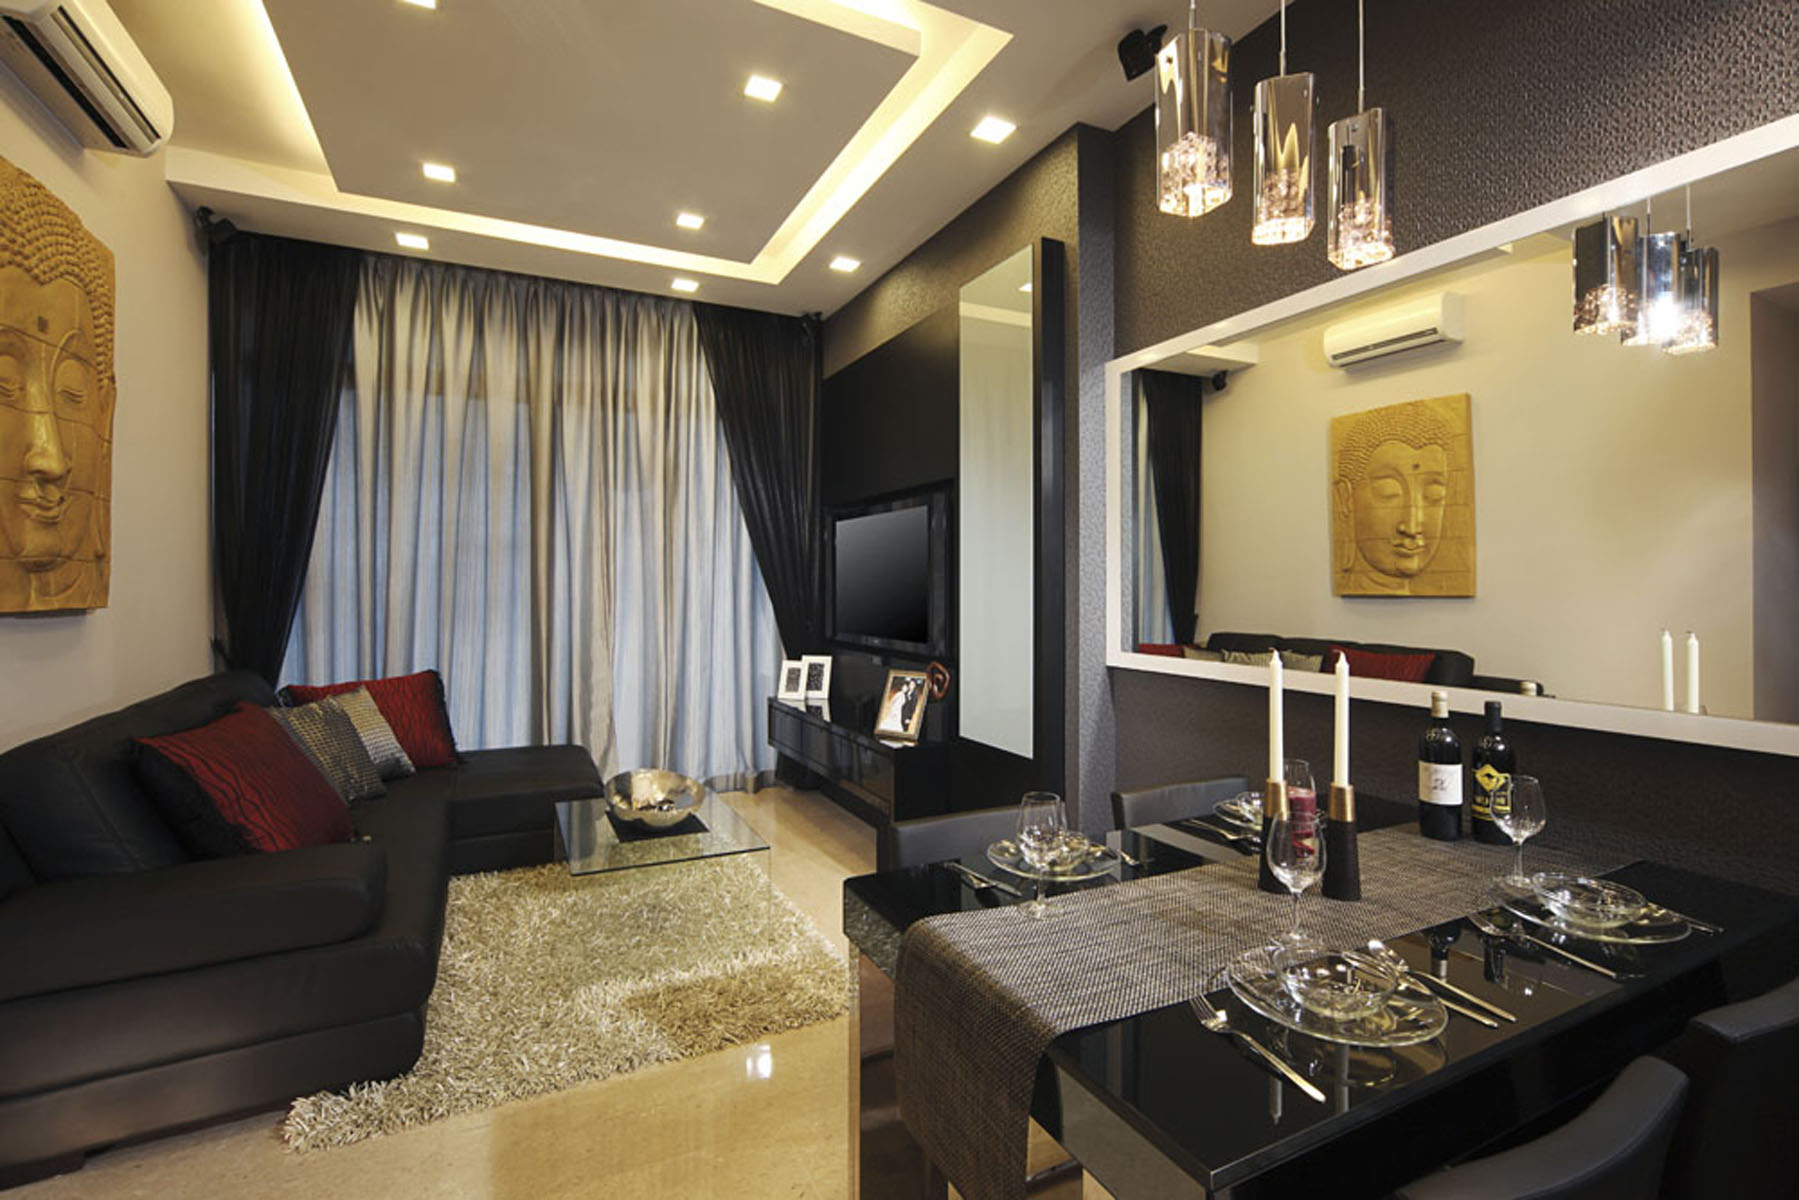 Extraordinary 30 Living Room Design Pictures Singapore Decorating Inspiration Of Contemporary